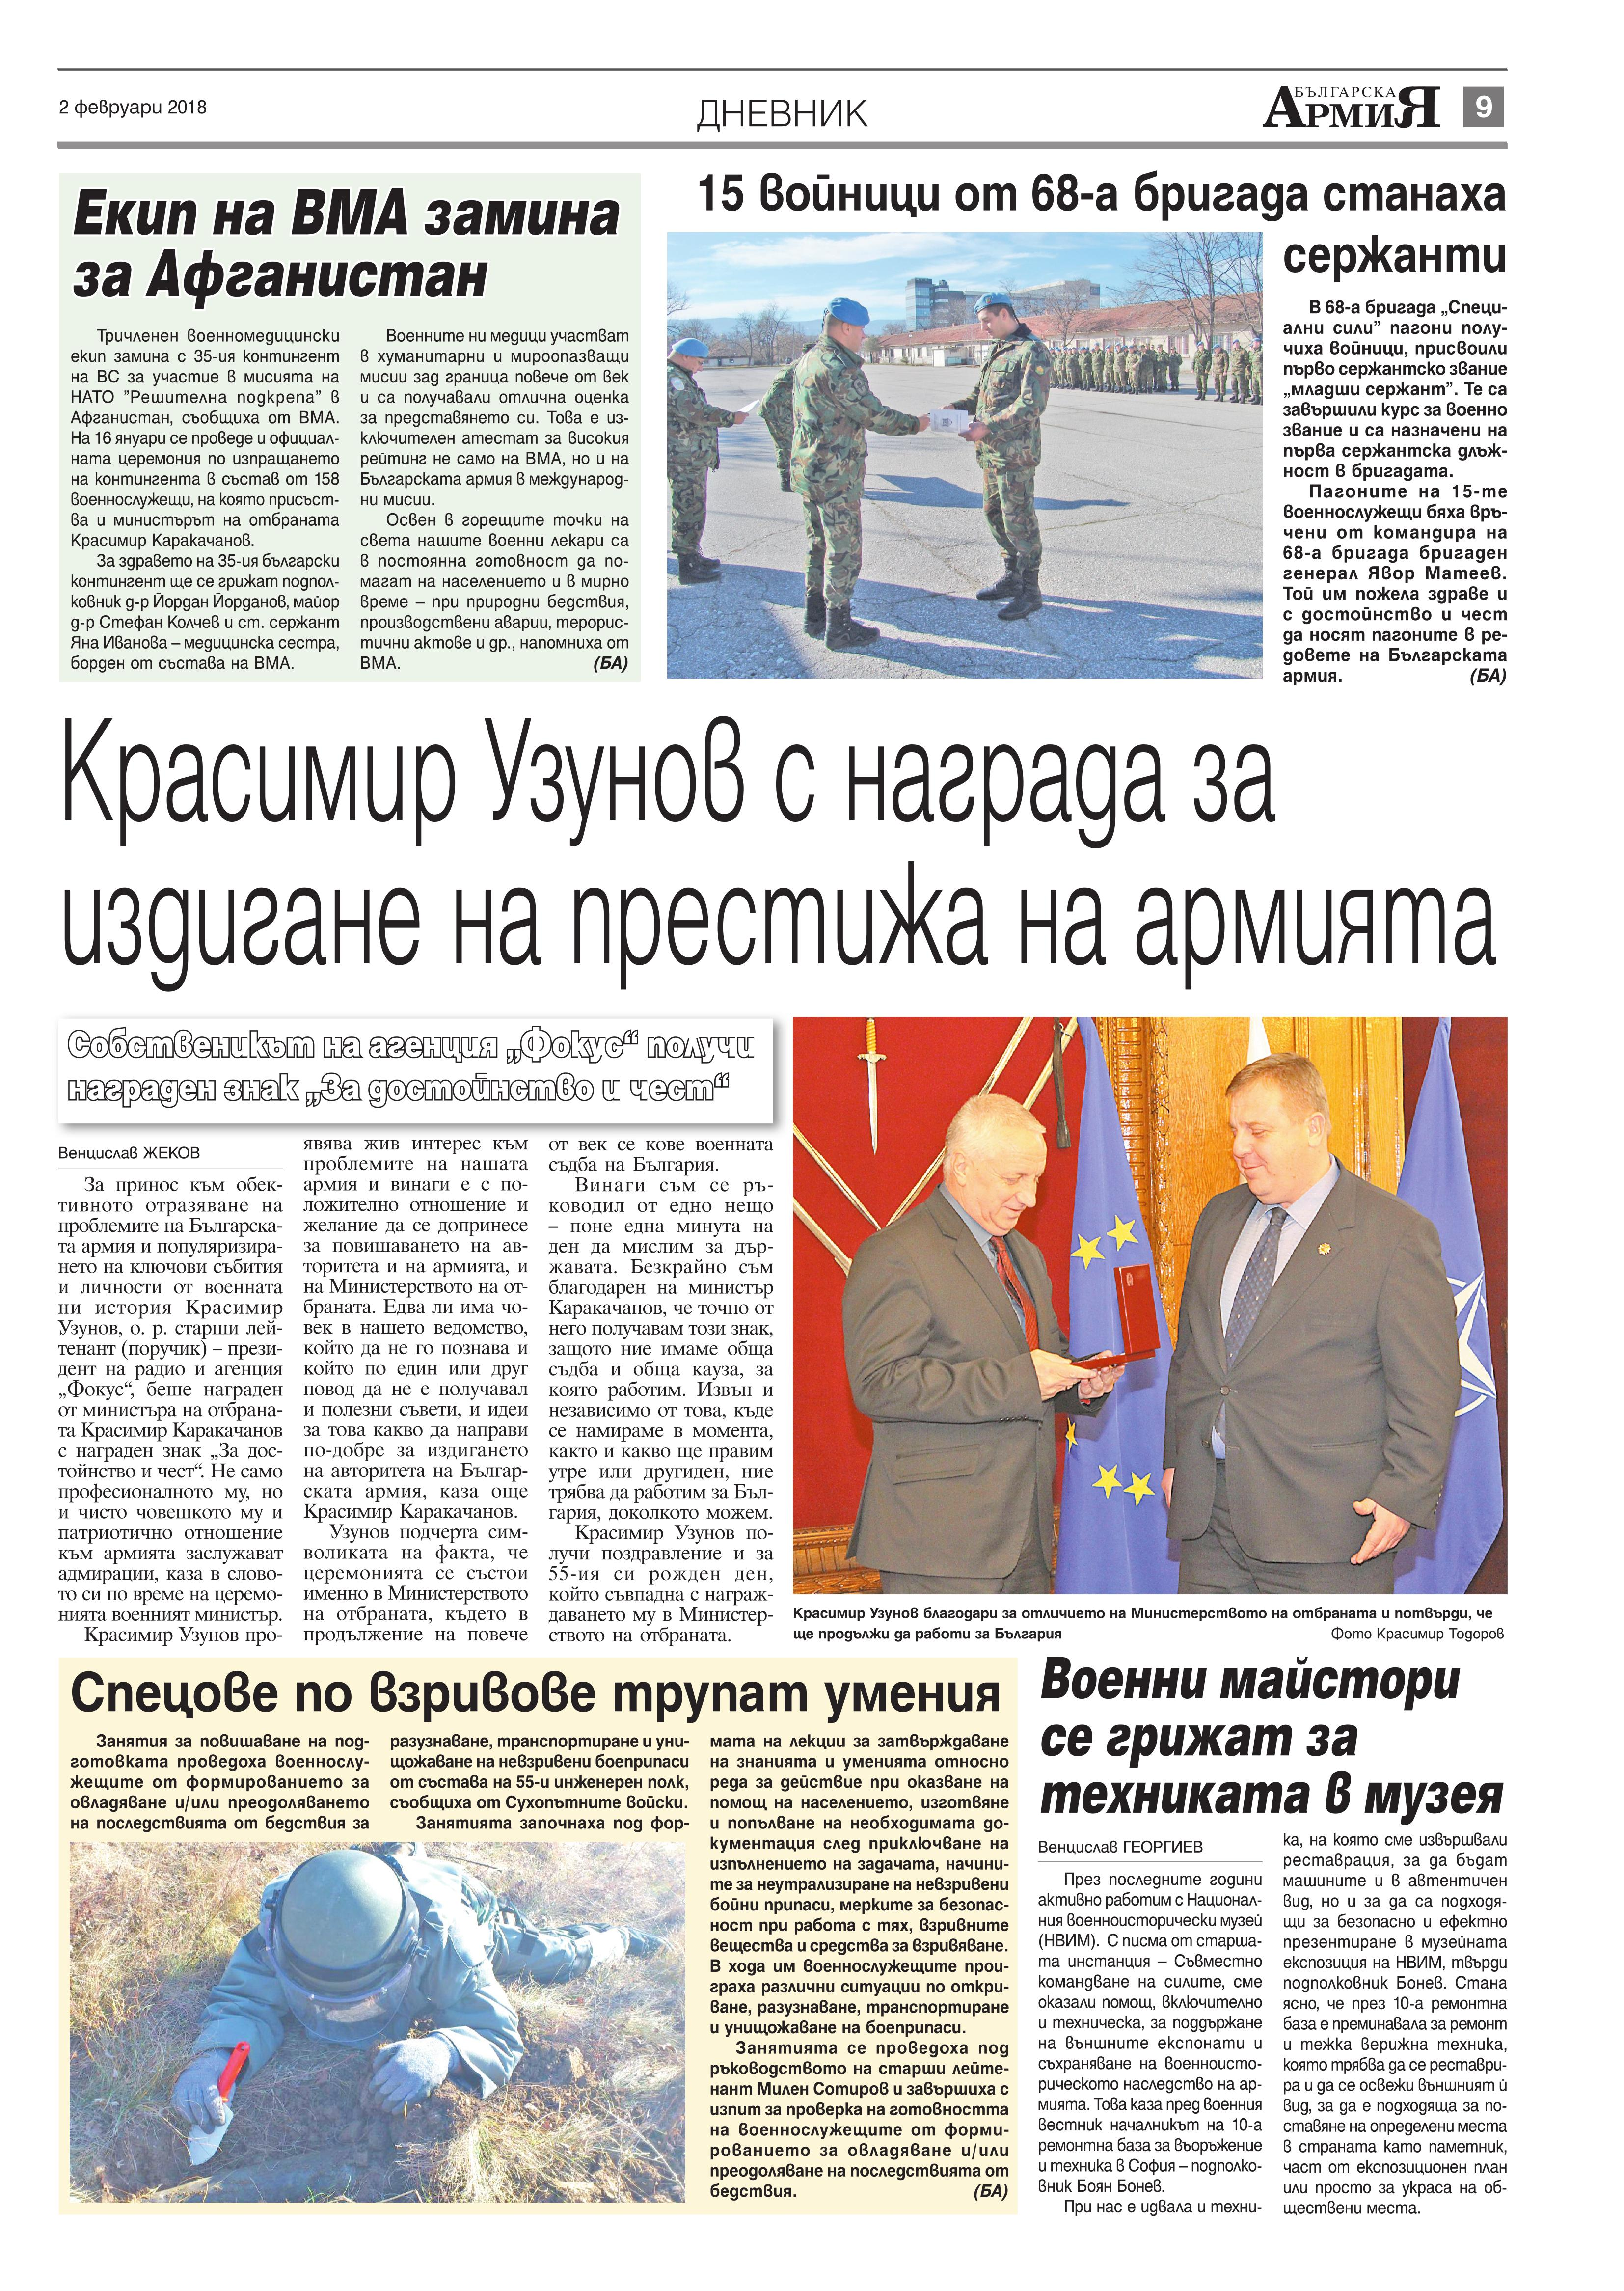 http://armymedia.bg/wp-content/uploads/2015/06/09.page1_-36.jpg